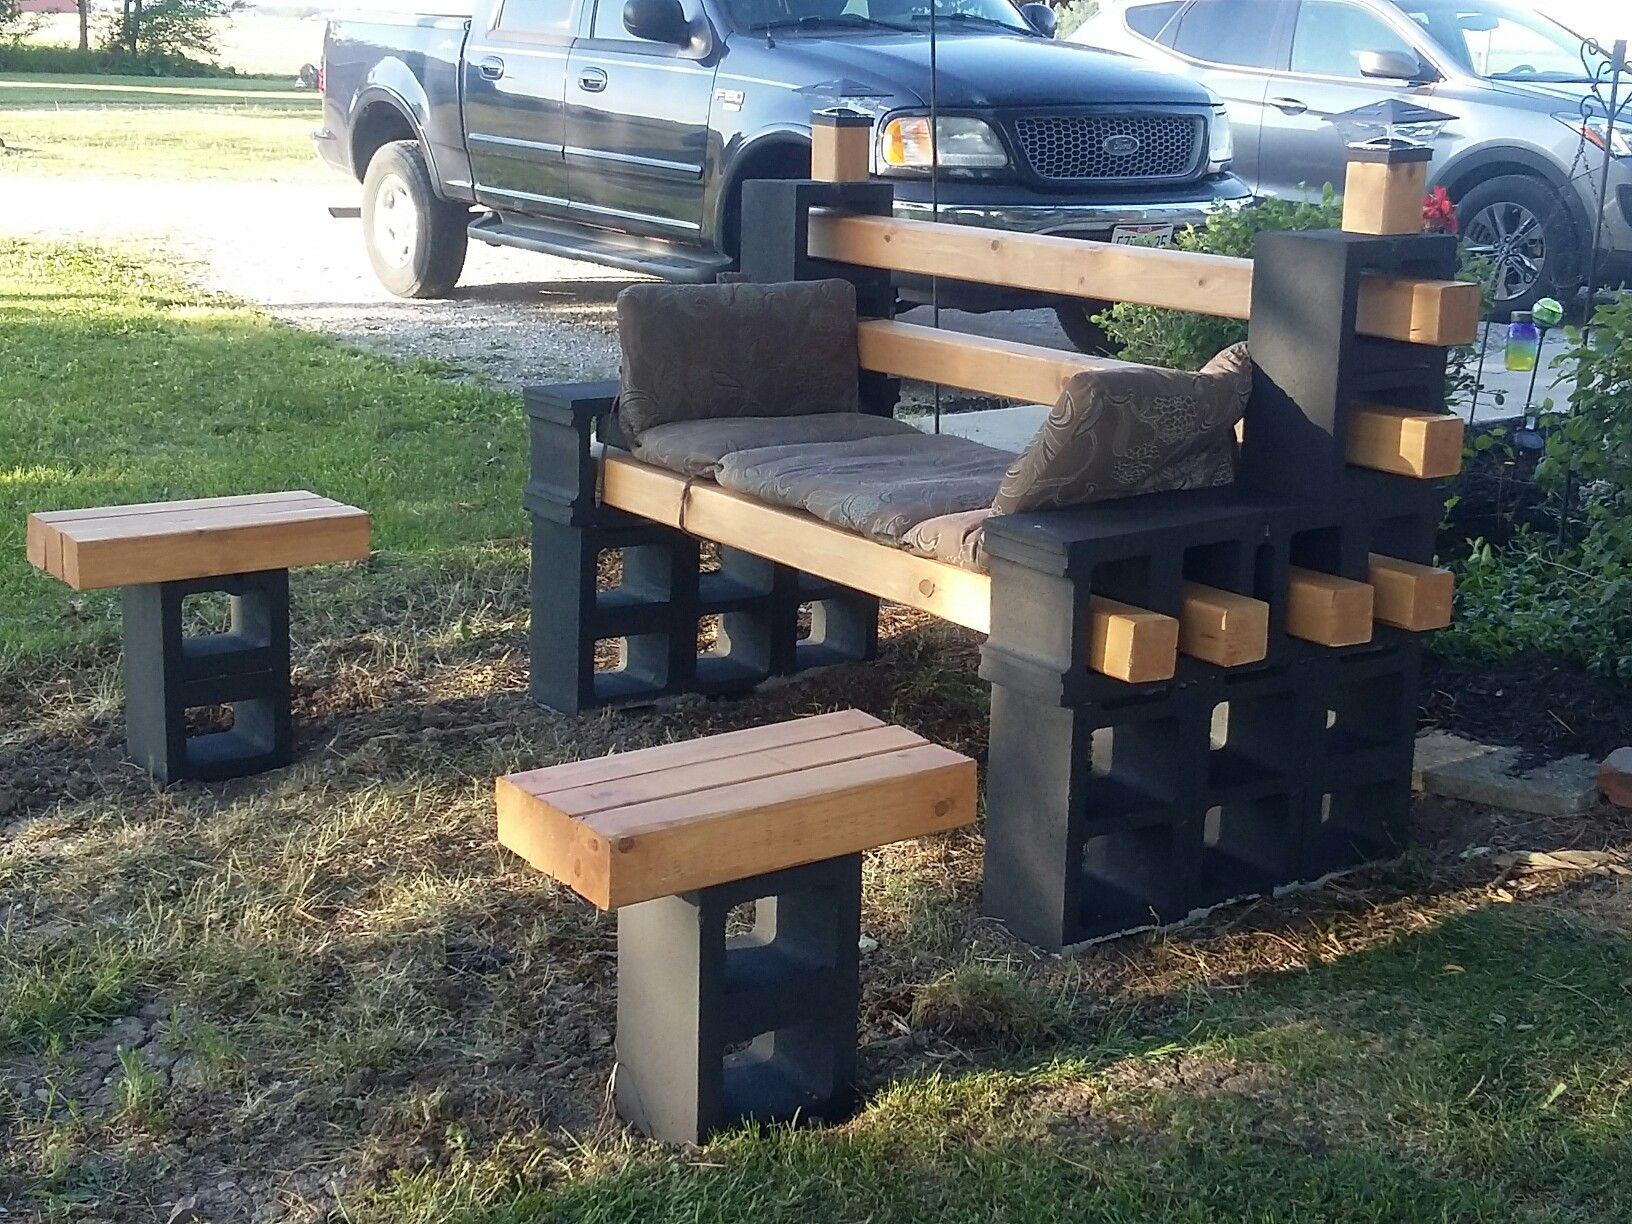 Design Cinder Block Table cinder block bench and tables i built the using 12 blocks using